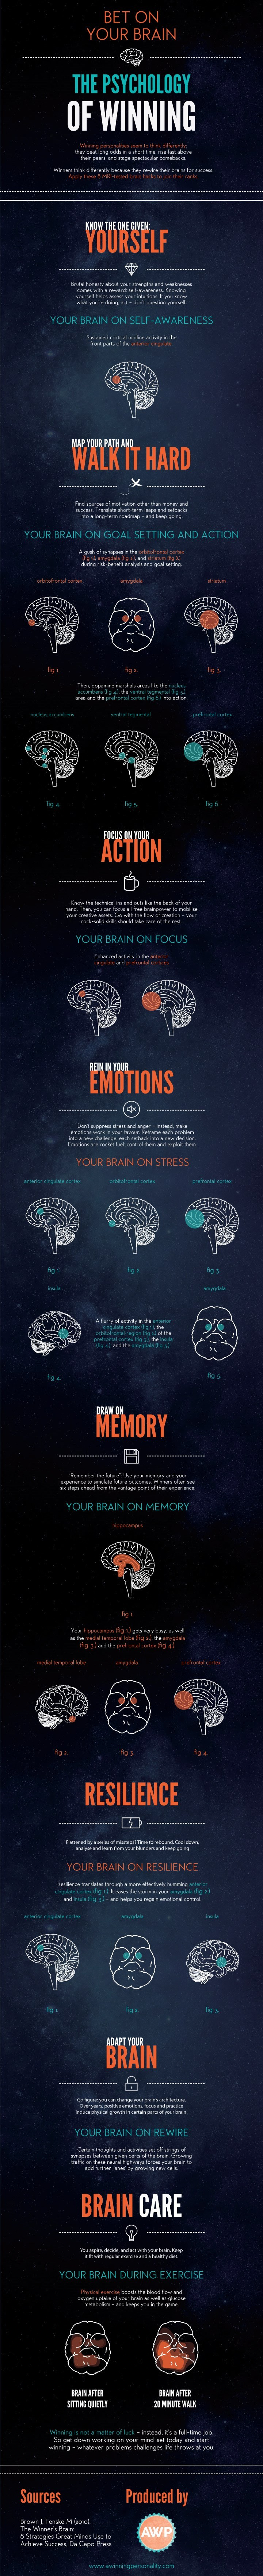 Bet-on-your-Brain-The-Psychology-of-Winning-Smaller-